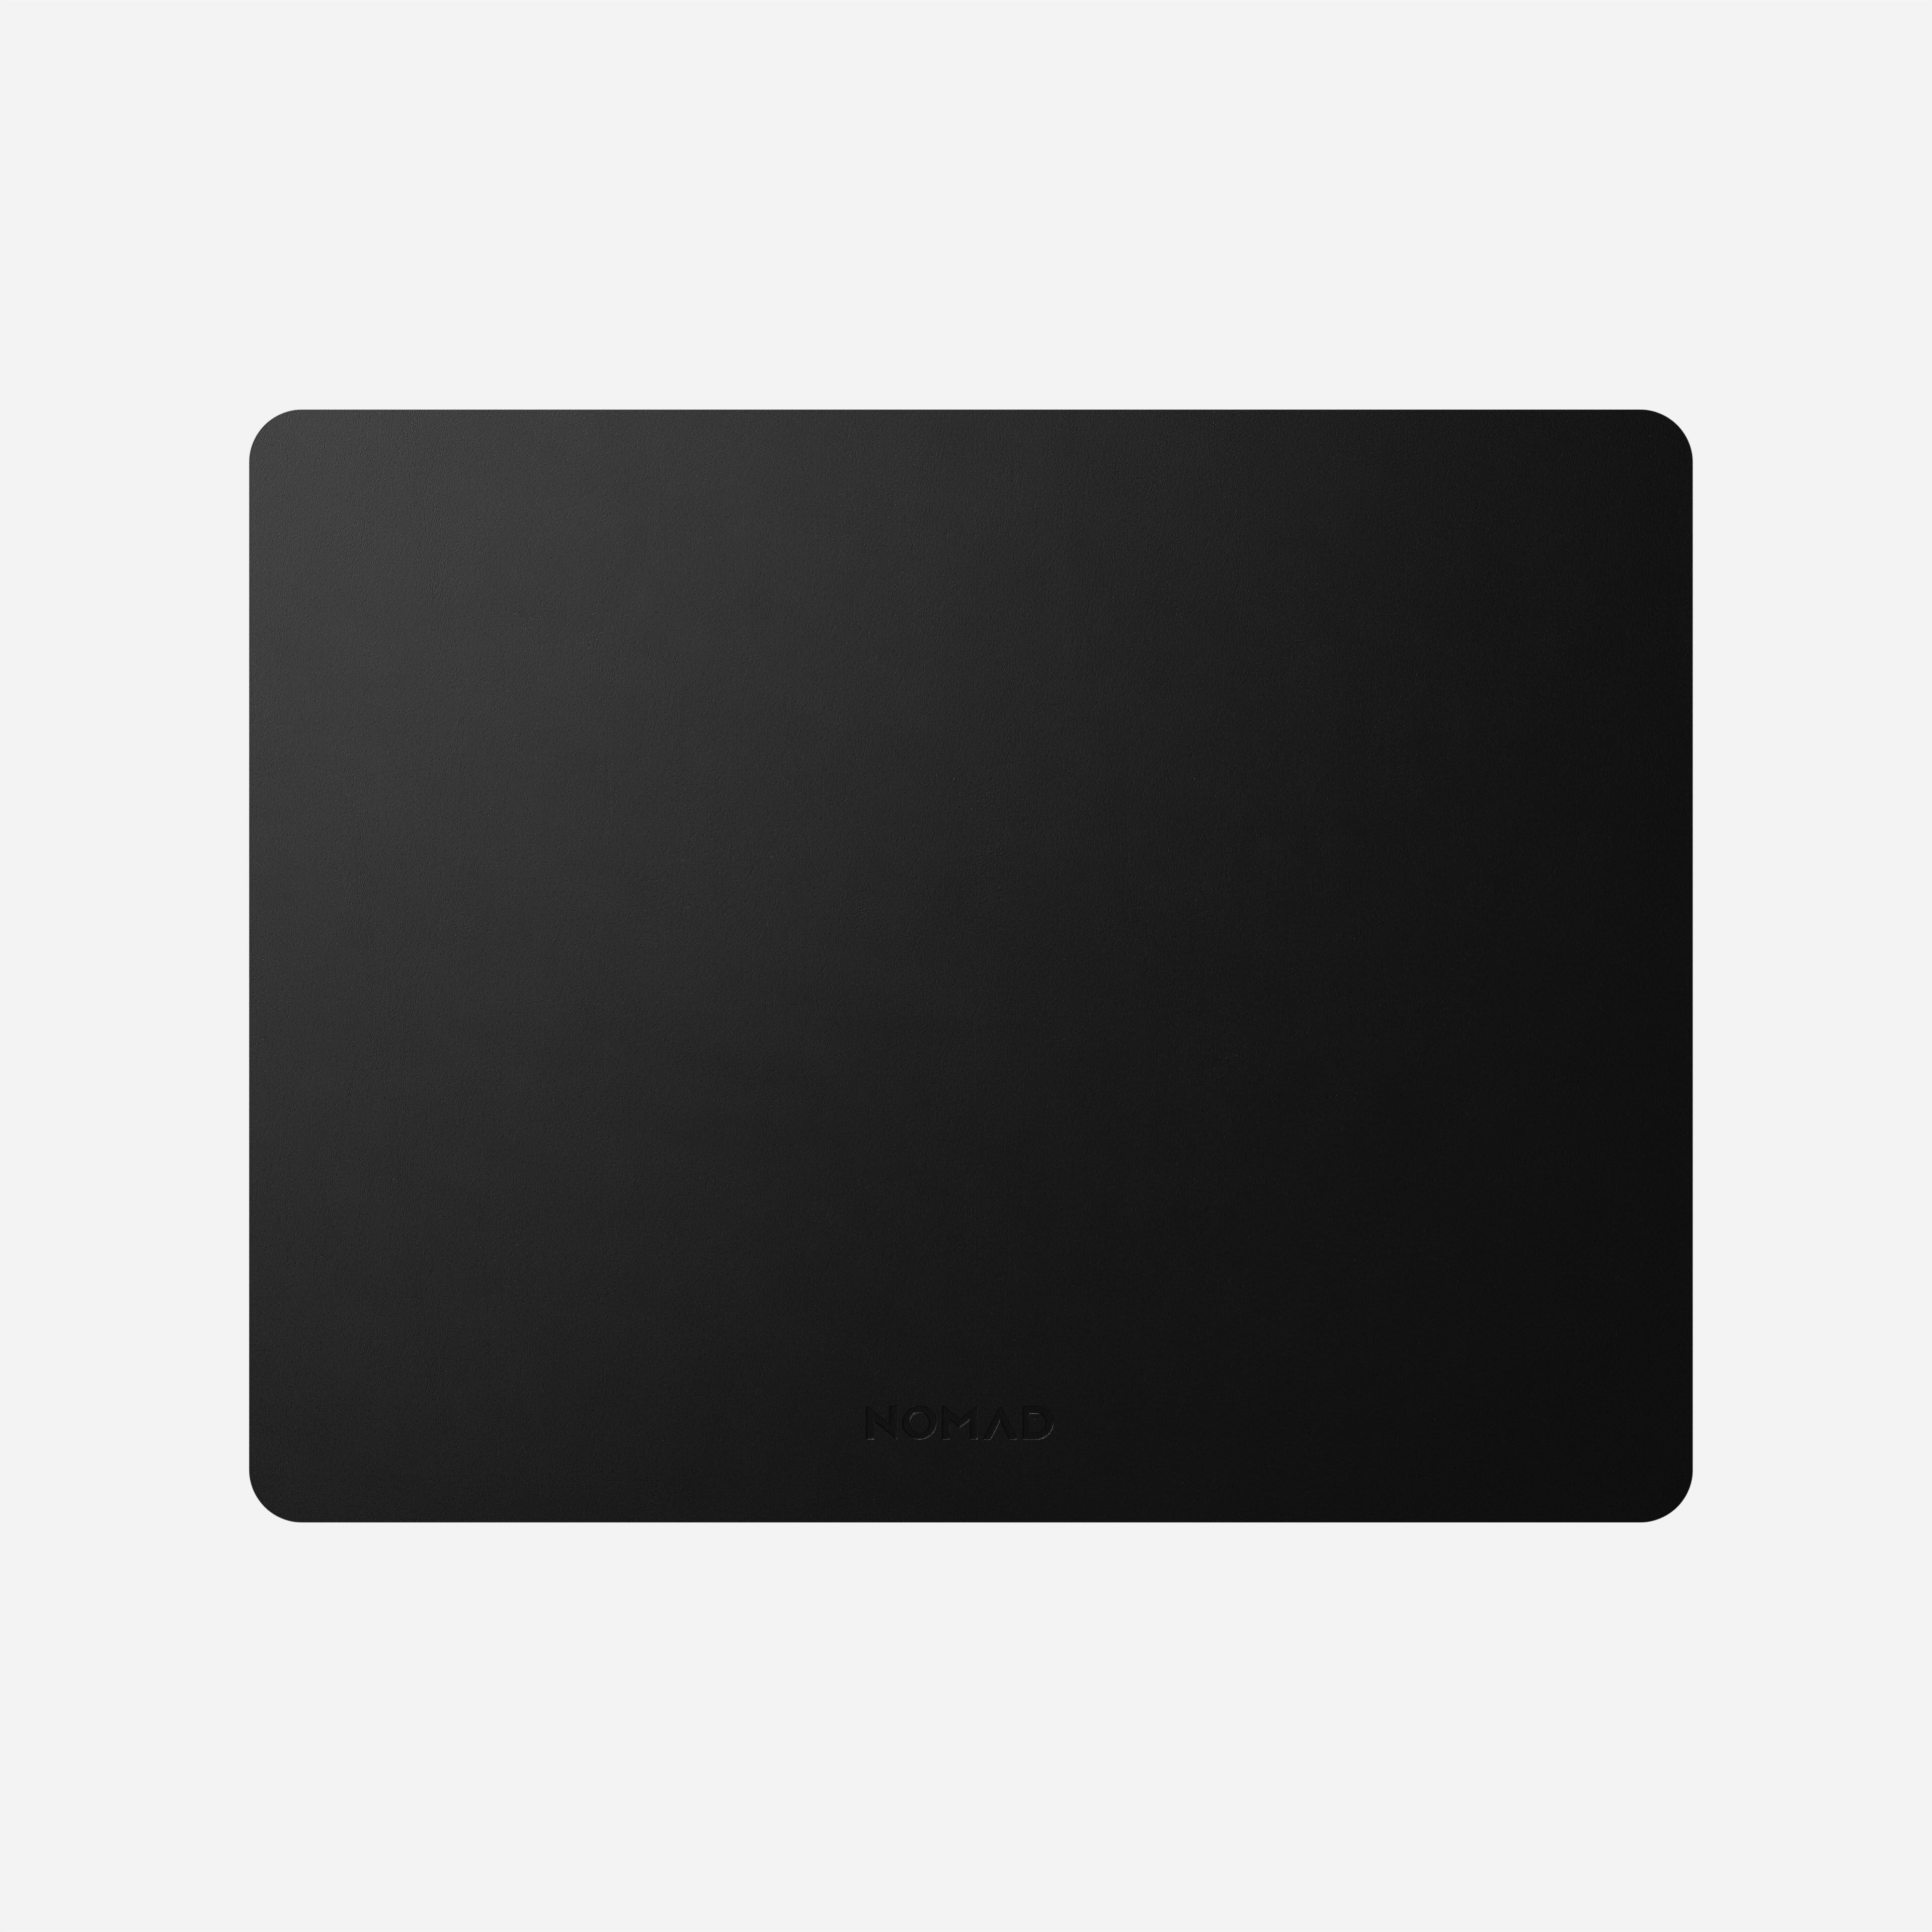 Horween Leather Mousepad Black 13-inch Font